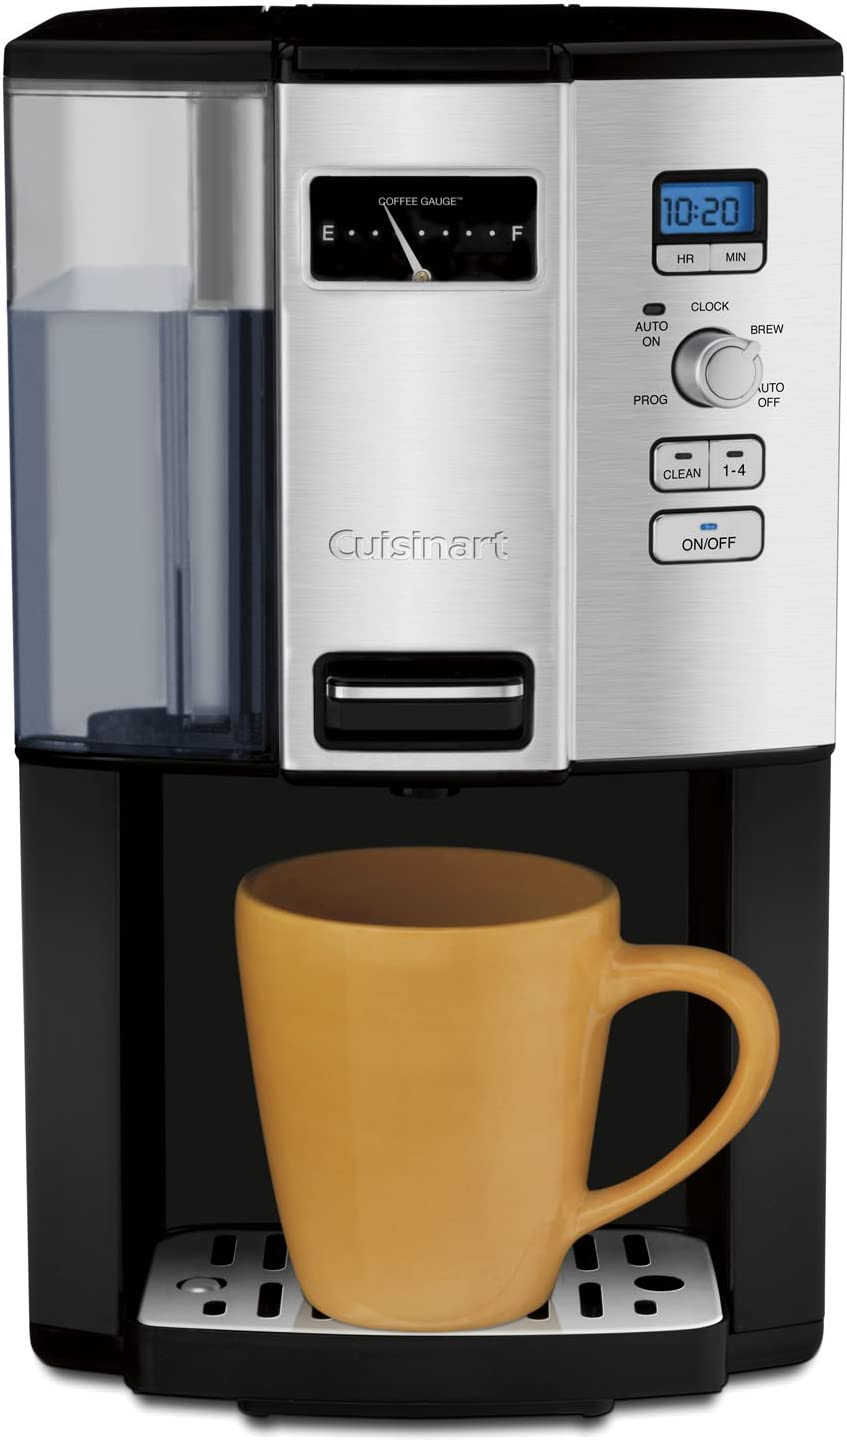 The Cuisinart DCC-3000: Best Rated Coffee Maker